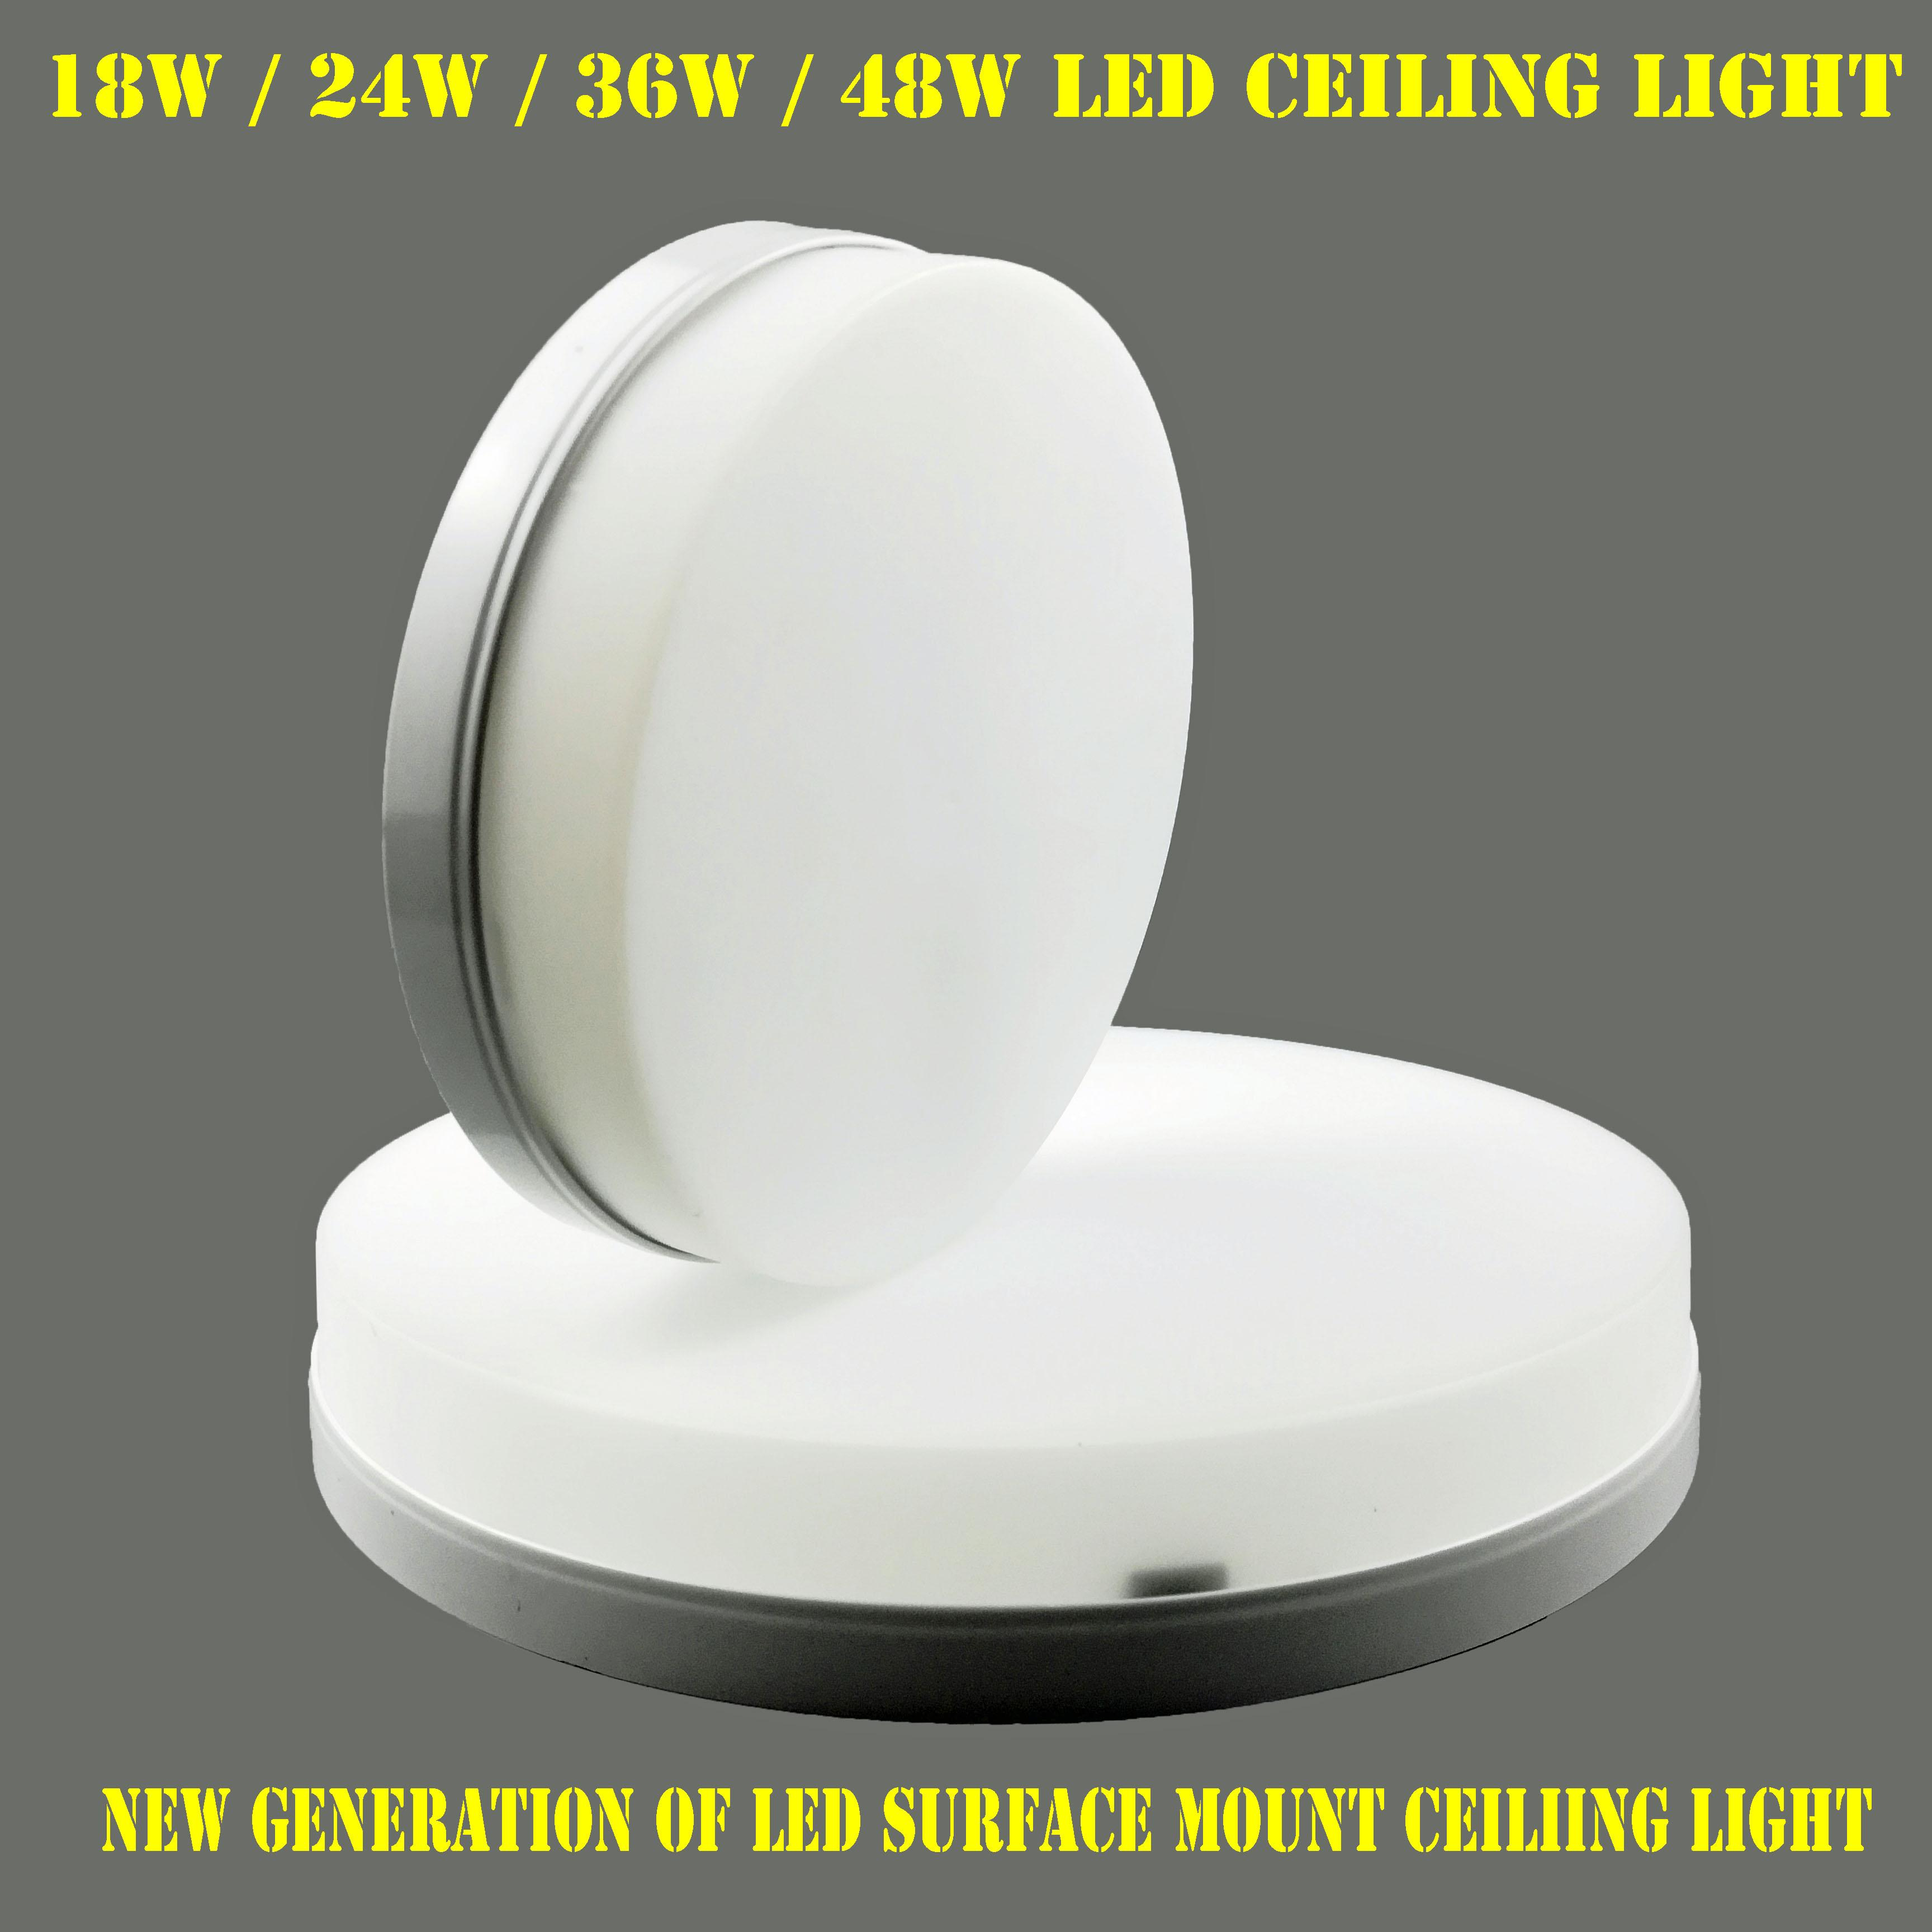 LED Ceiling Light/ LED Surface mount ceiling Light/ LED PANEL LIGHT  (18W & 24W & 36W & 48W/ 2nd Generation LED LIGHT / Small size, Super slim design and high brightness LED LIGHT) - PROACTIVE SUPER MALLnd